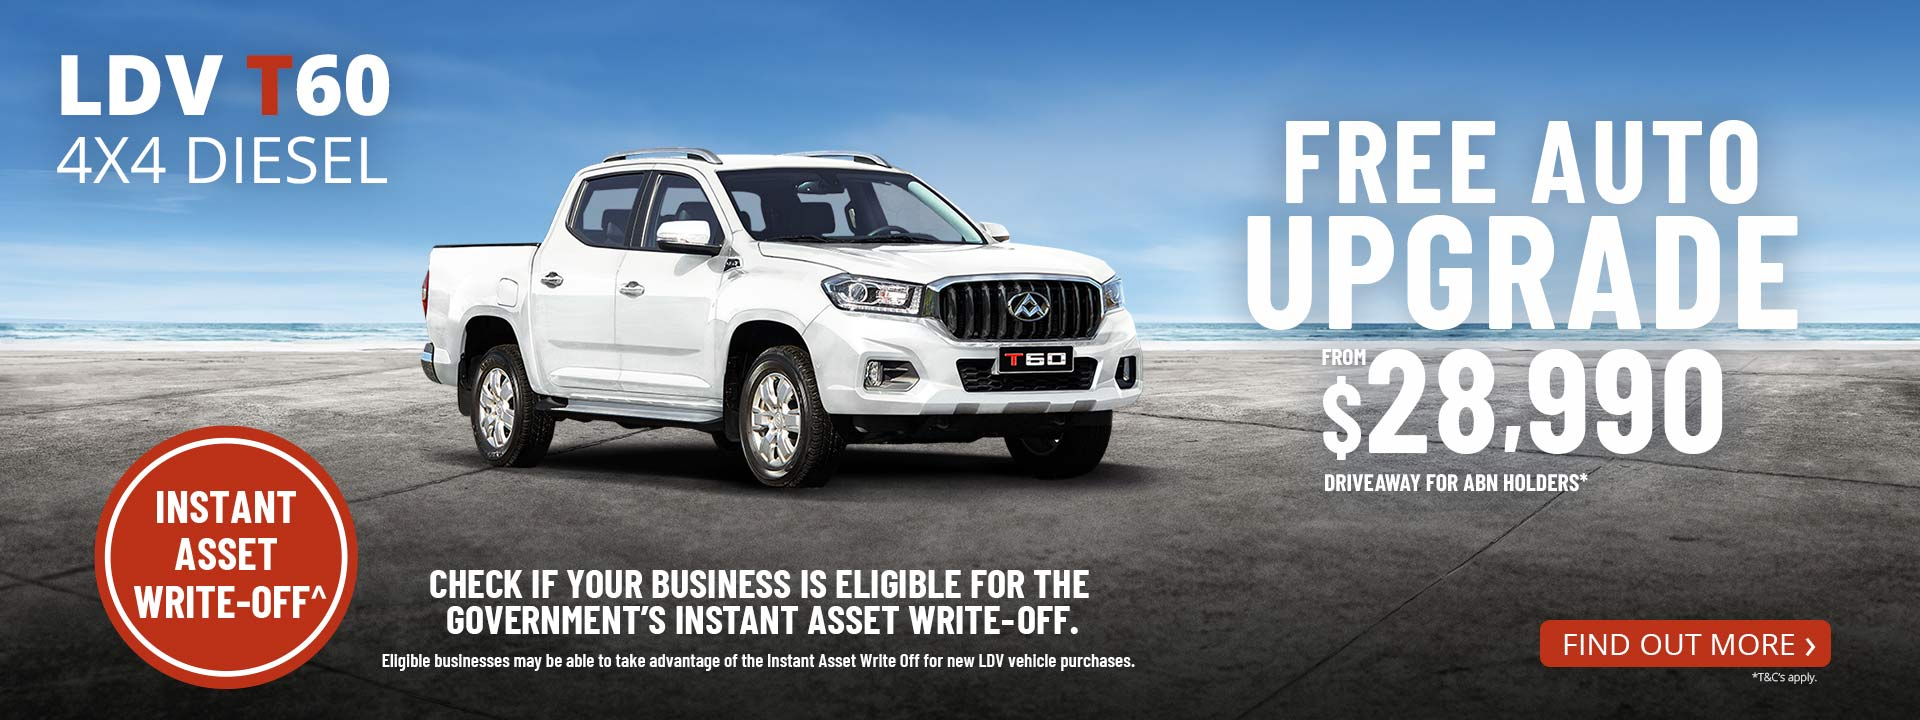 LDV T60 4x4 Diesel - Free Auto Upgrade from $28,990 Driveaway for ABN Holders*